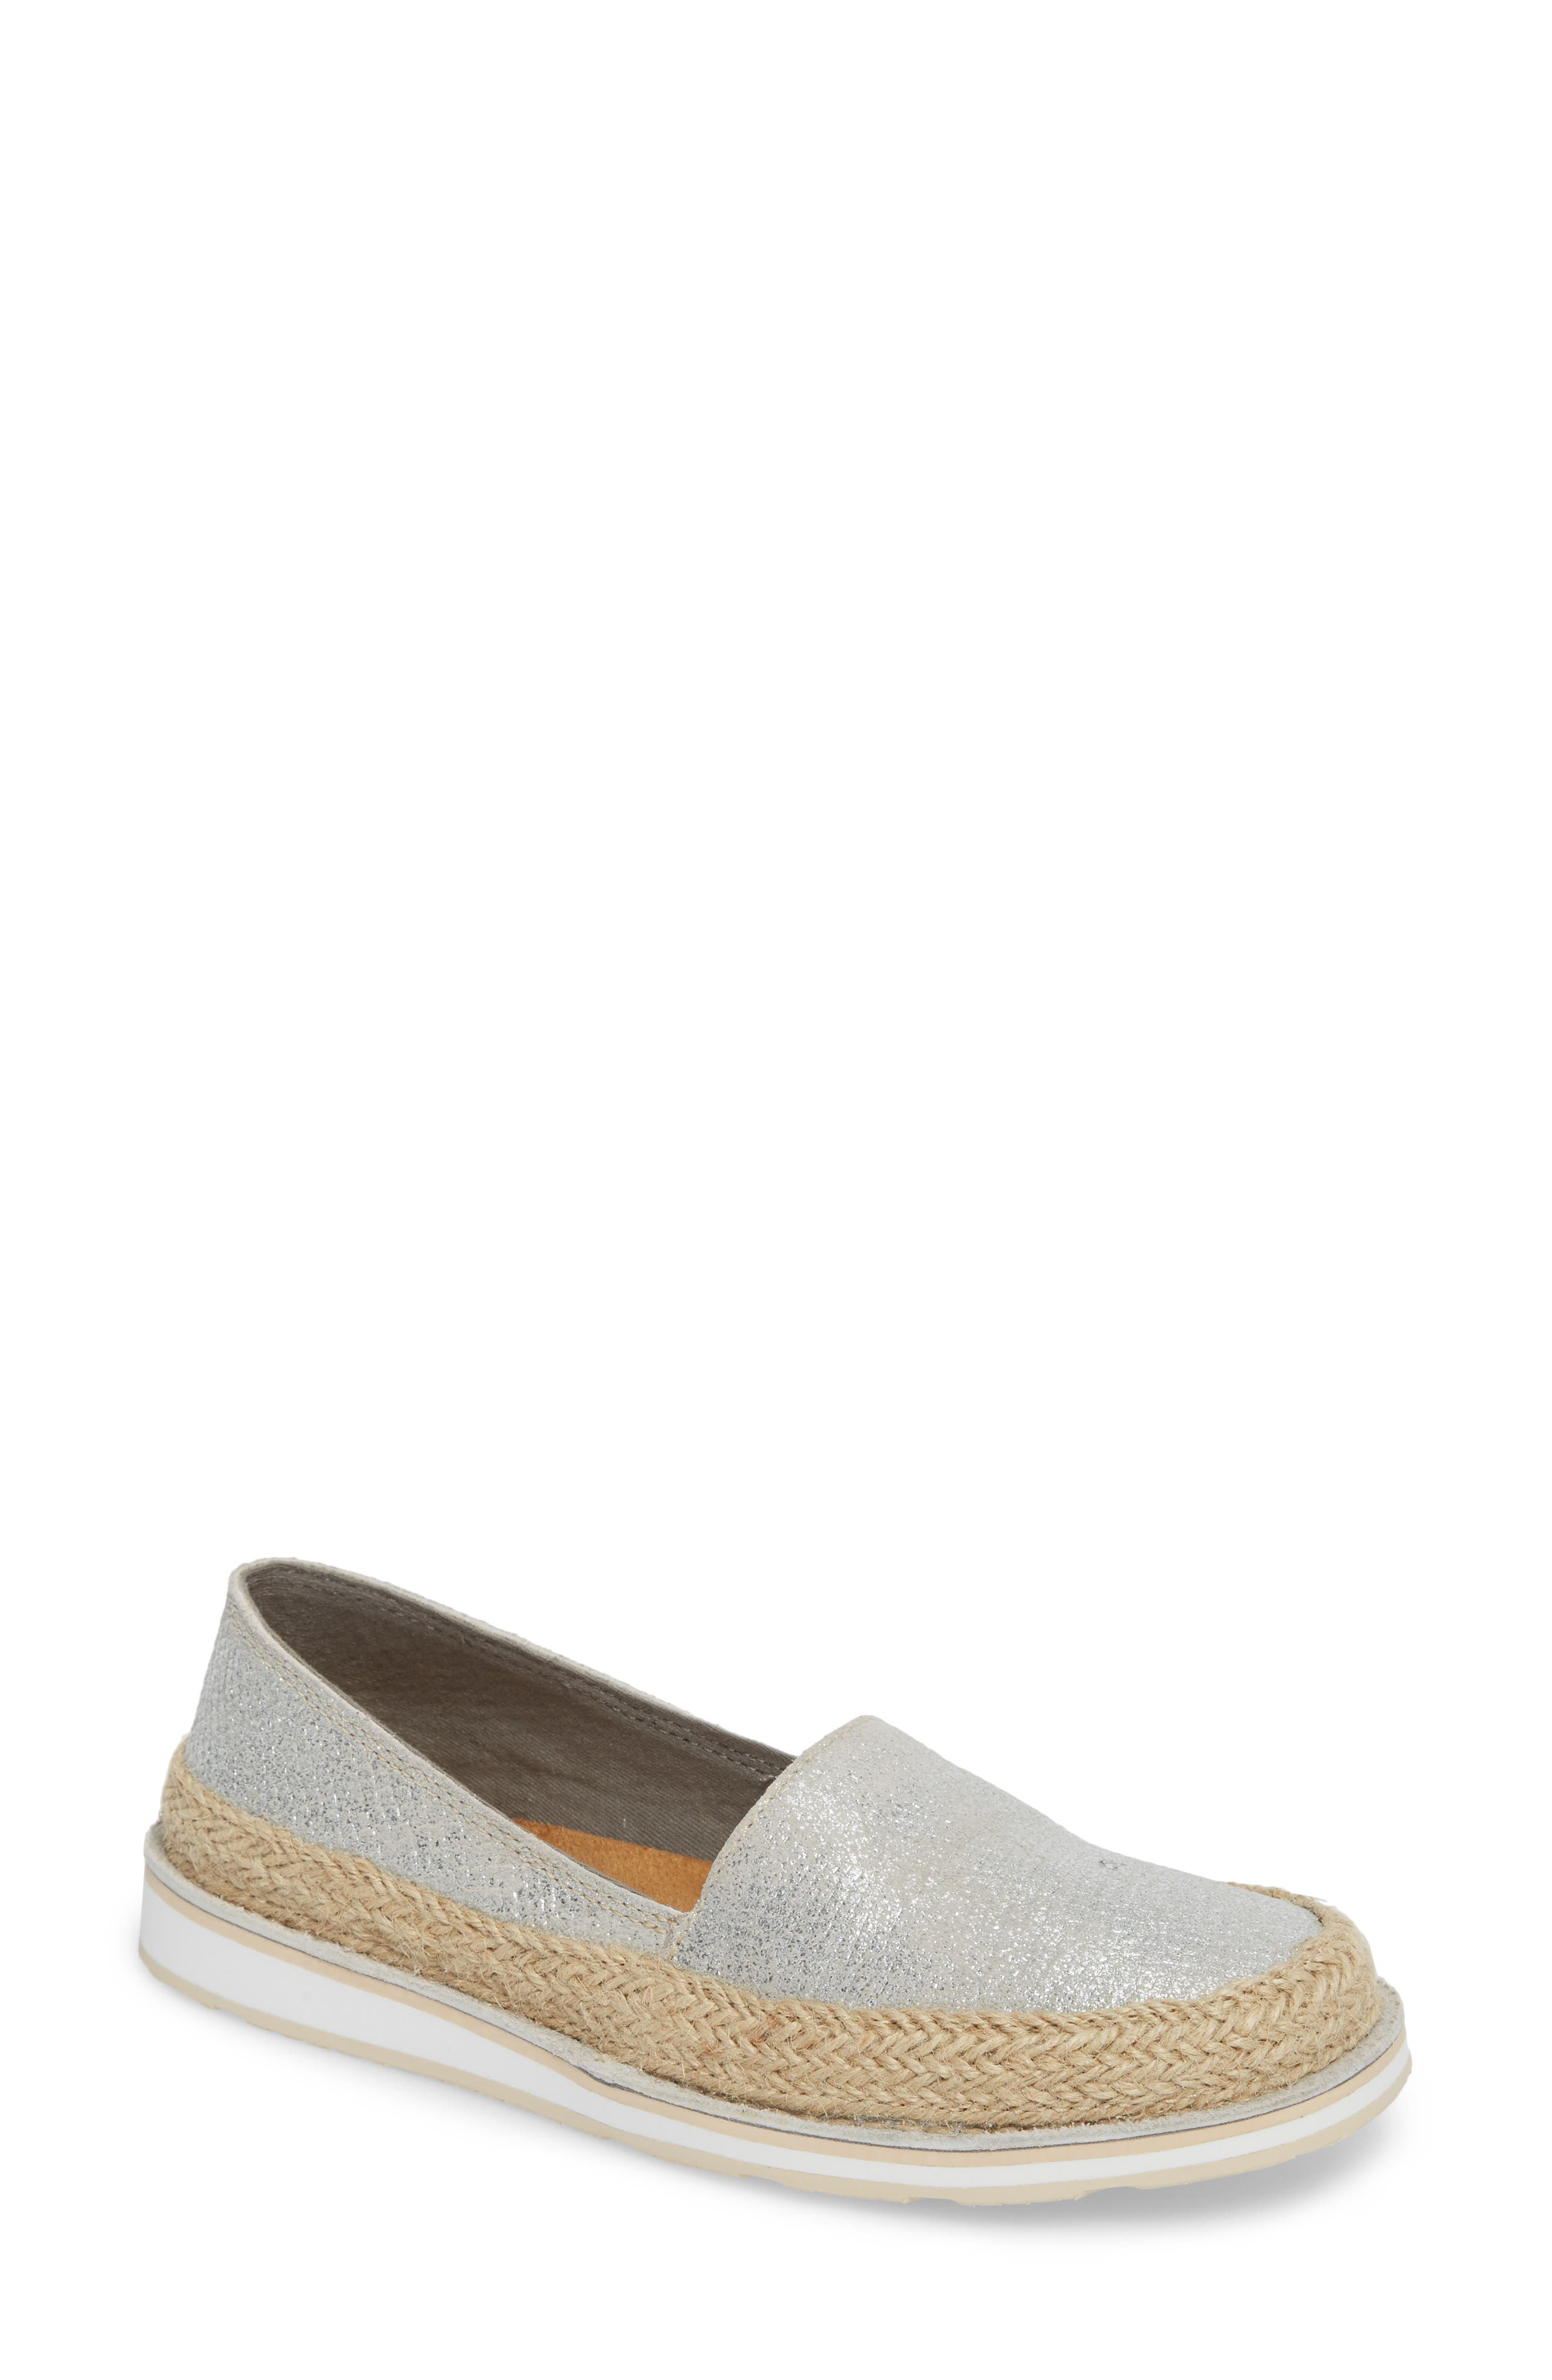 Cruiser Espadrille Loafer,                             Main thumbnail 1, color,